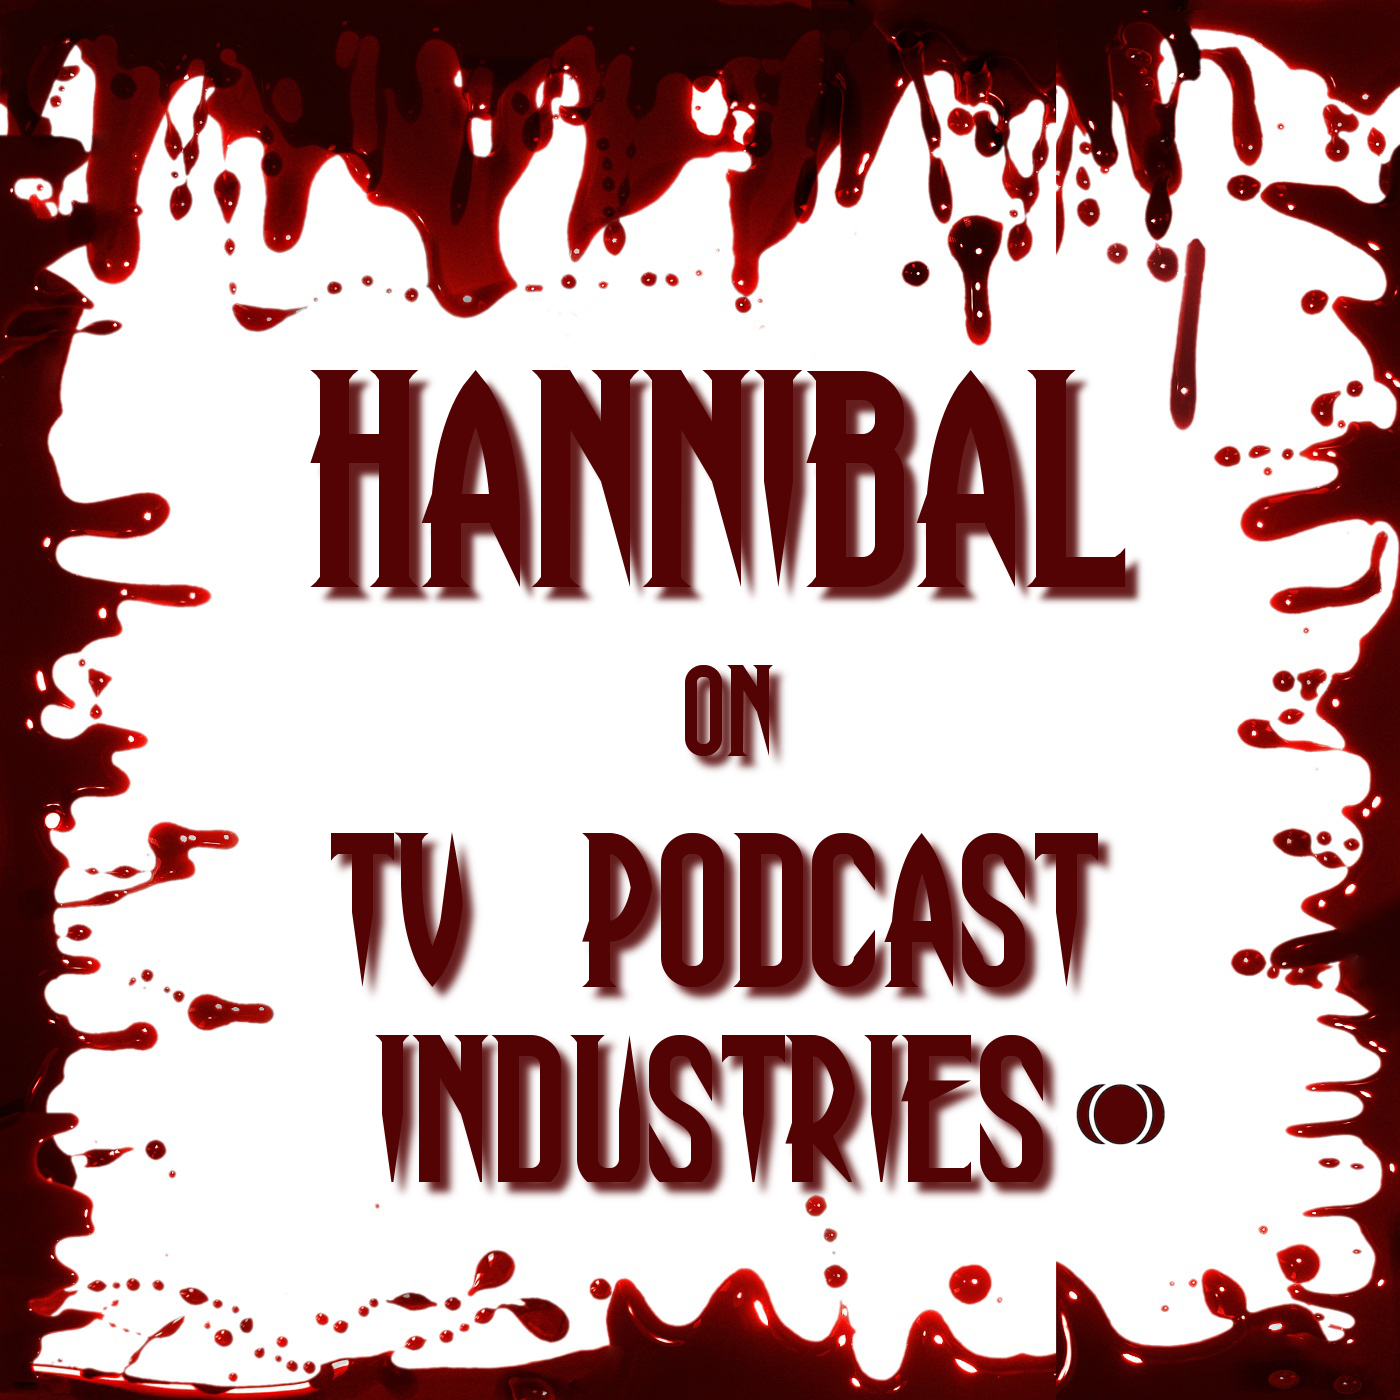 Hannibal on TV Podcast Industries